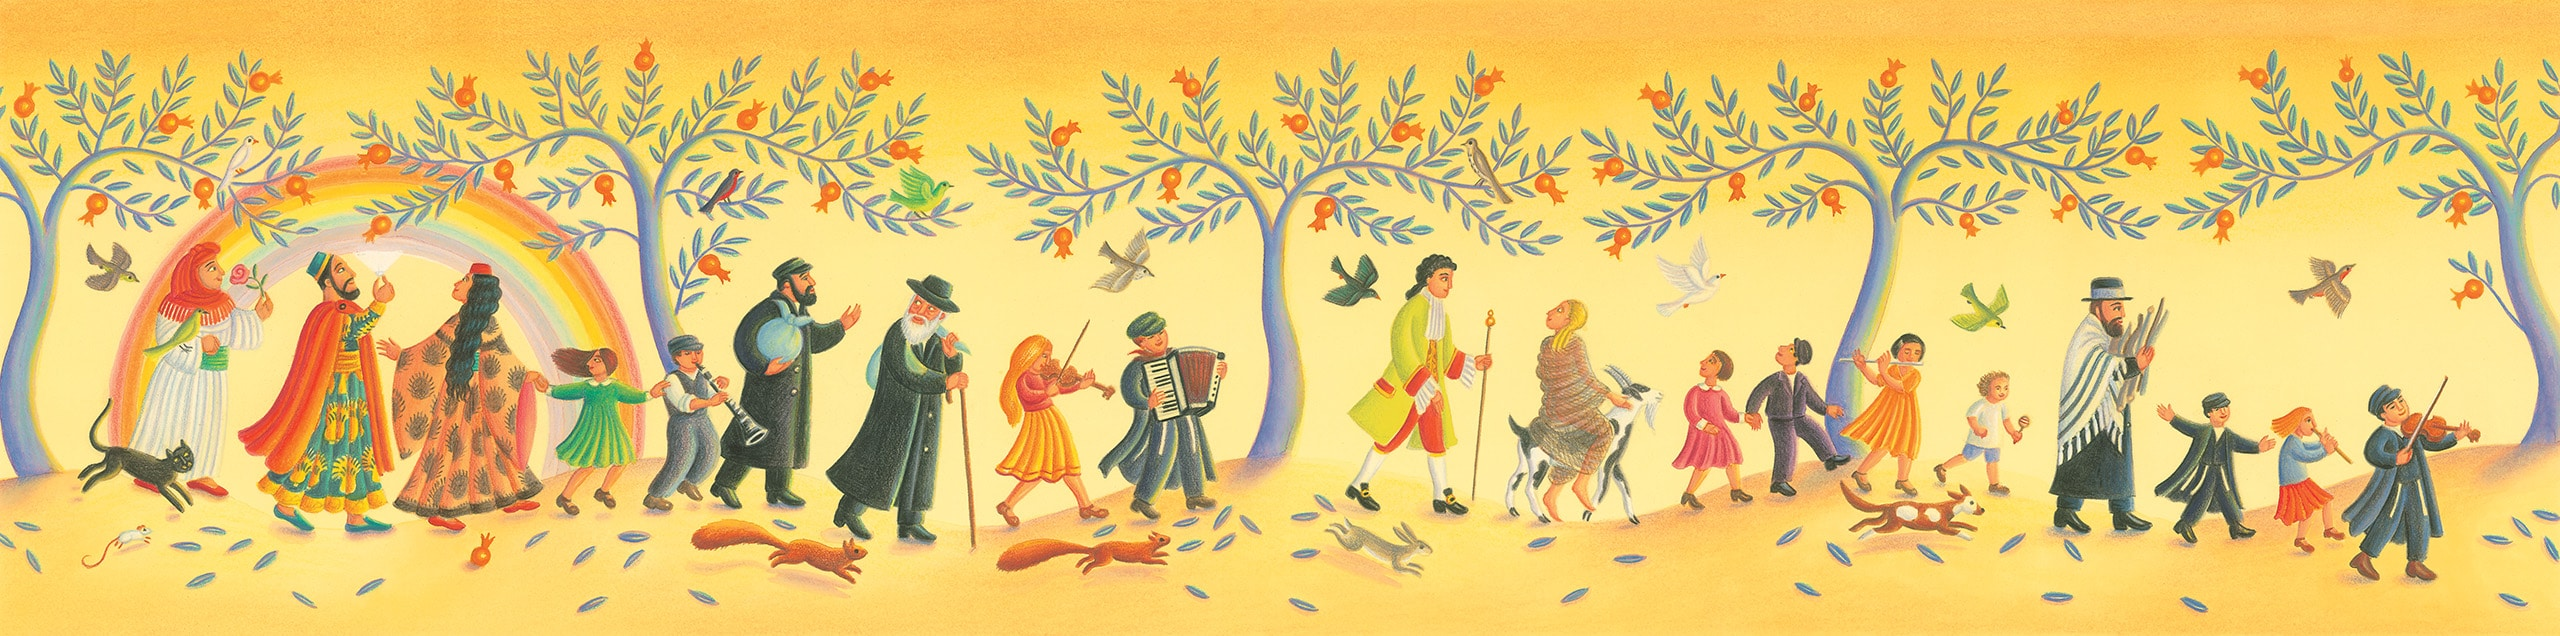 The Barefoot Book of Jewish Tales Gallery 'Banner image'